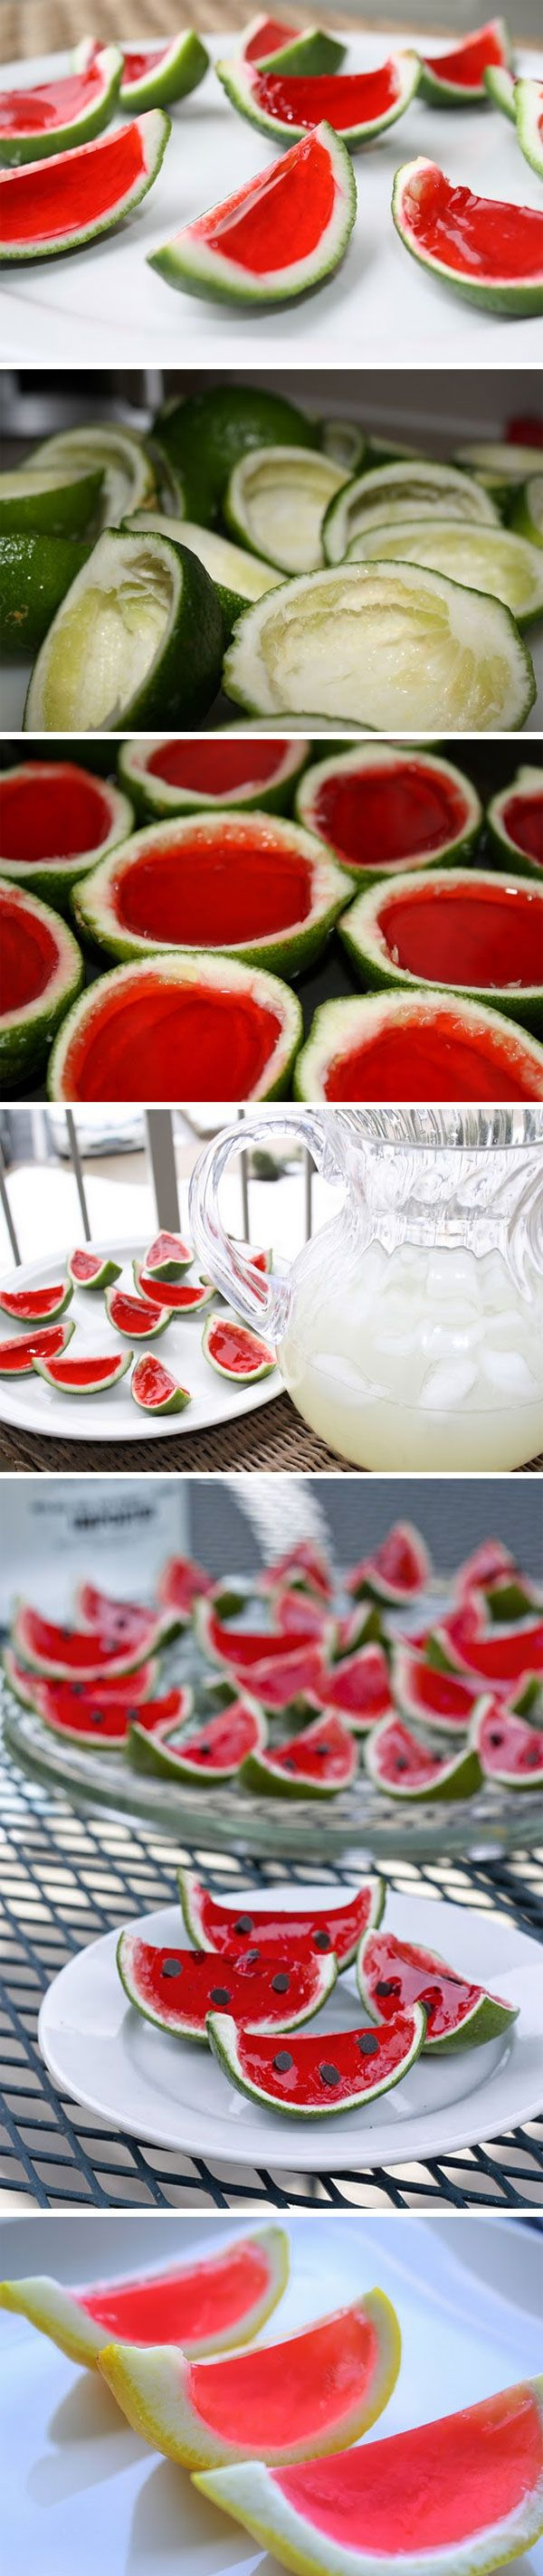 Watermelon: Strawberry Jelly & chocolate buttons -- excellent! Just got a Blendtec and I needed and idea for the lemon and lime peels that I don't put in my smoothies